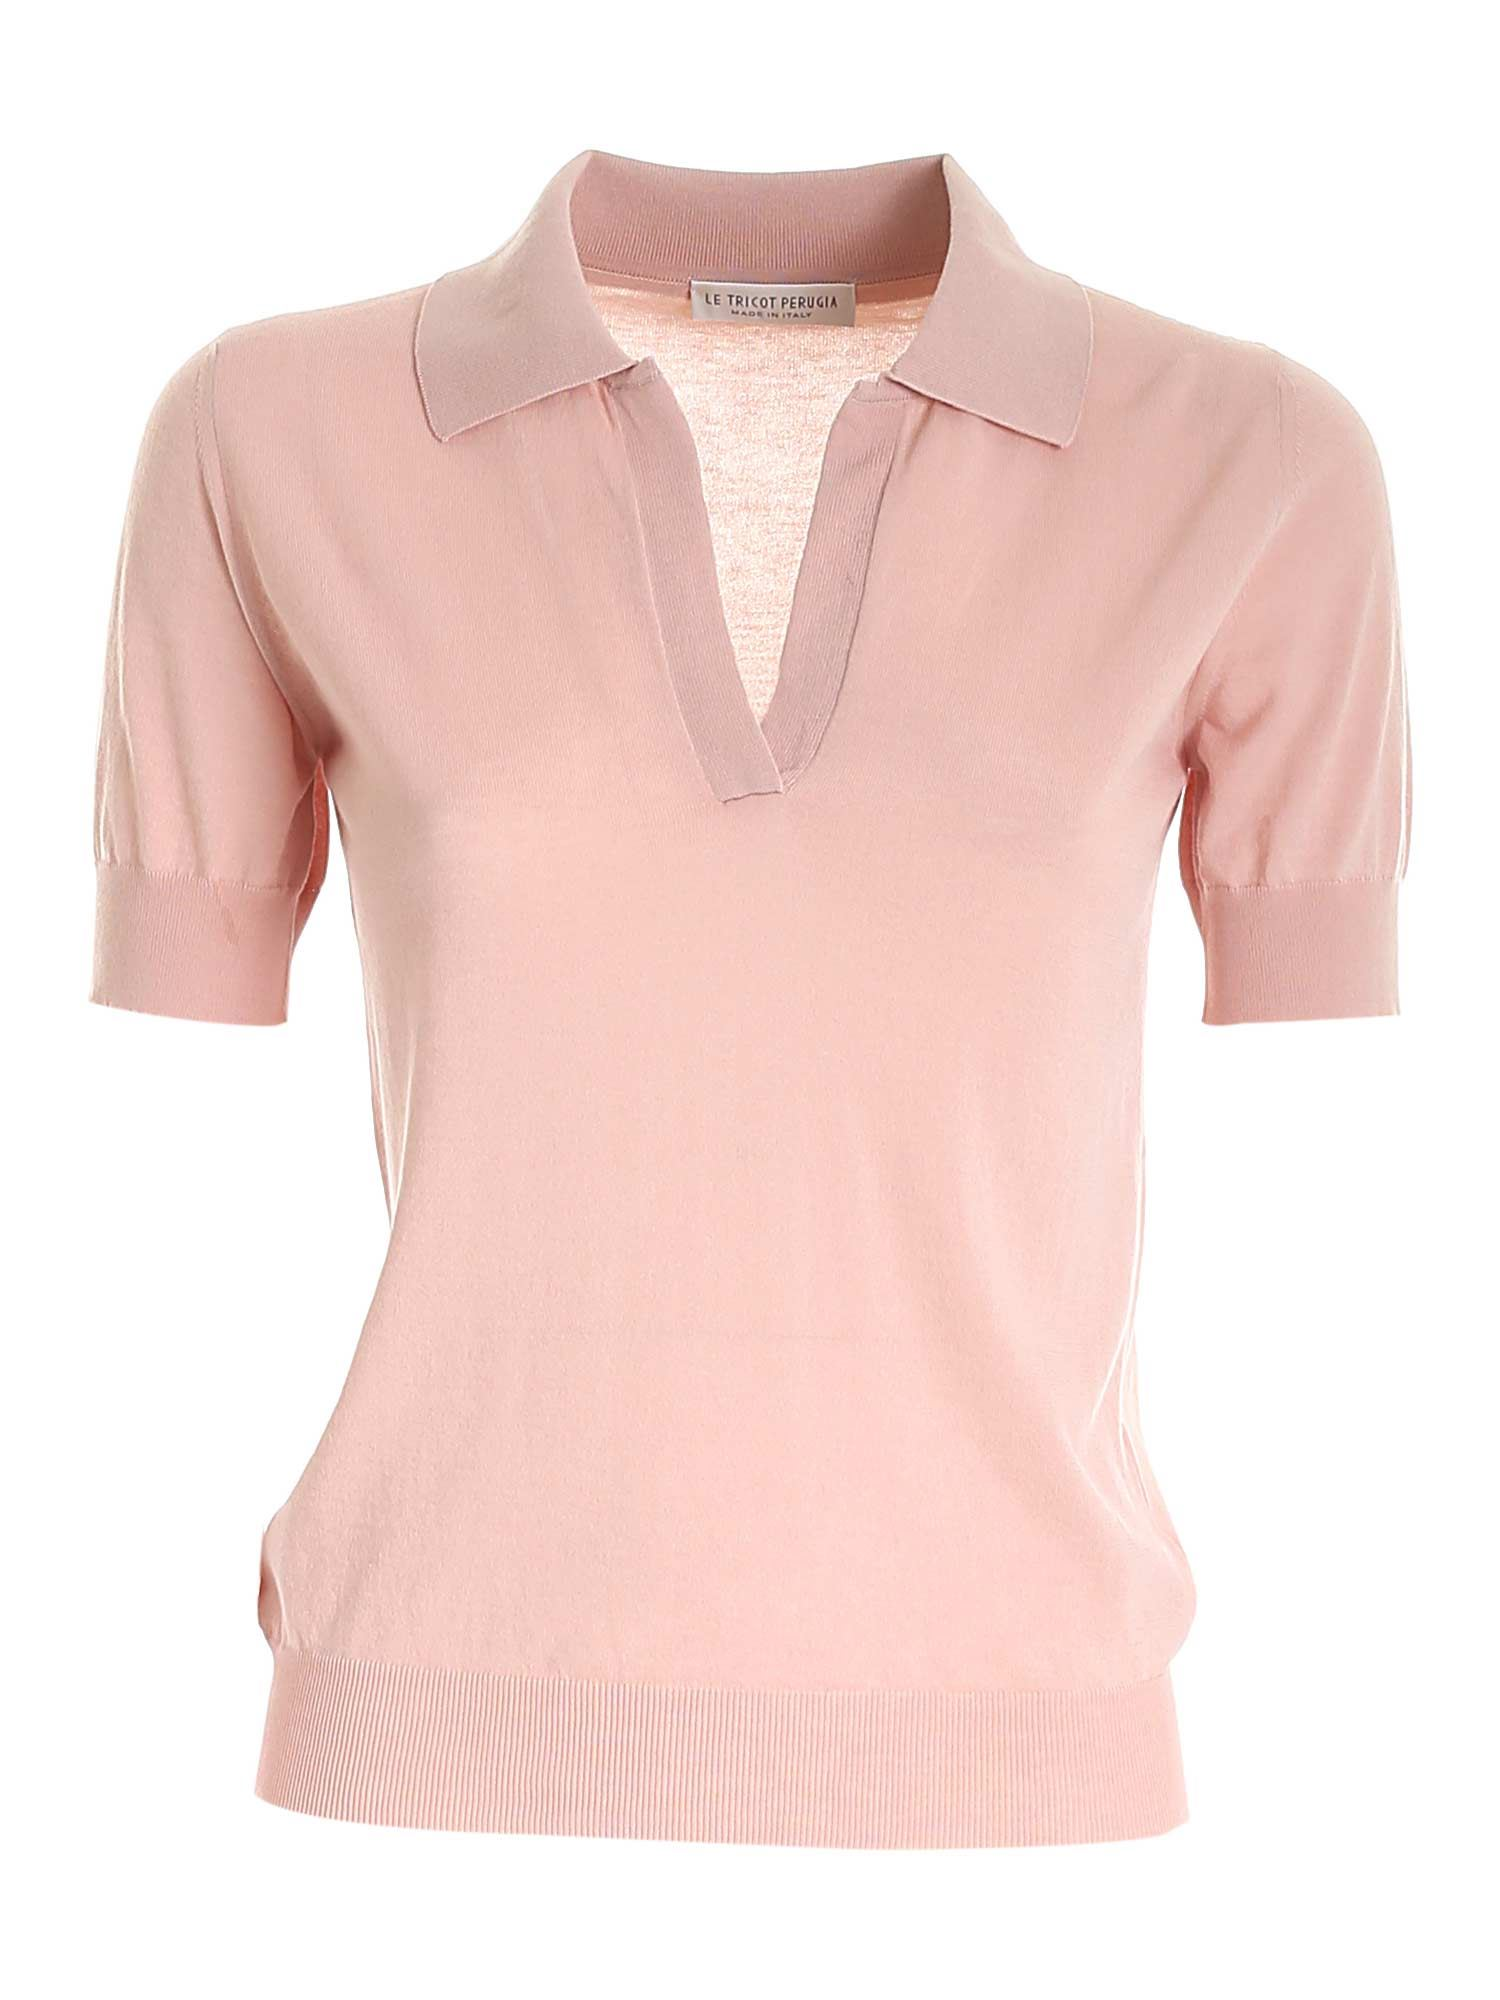 Le Tricot Perugia Cottons COTTON SWEATER IN PINK